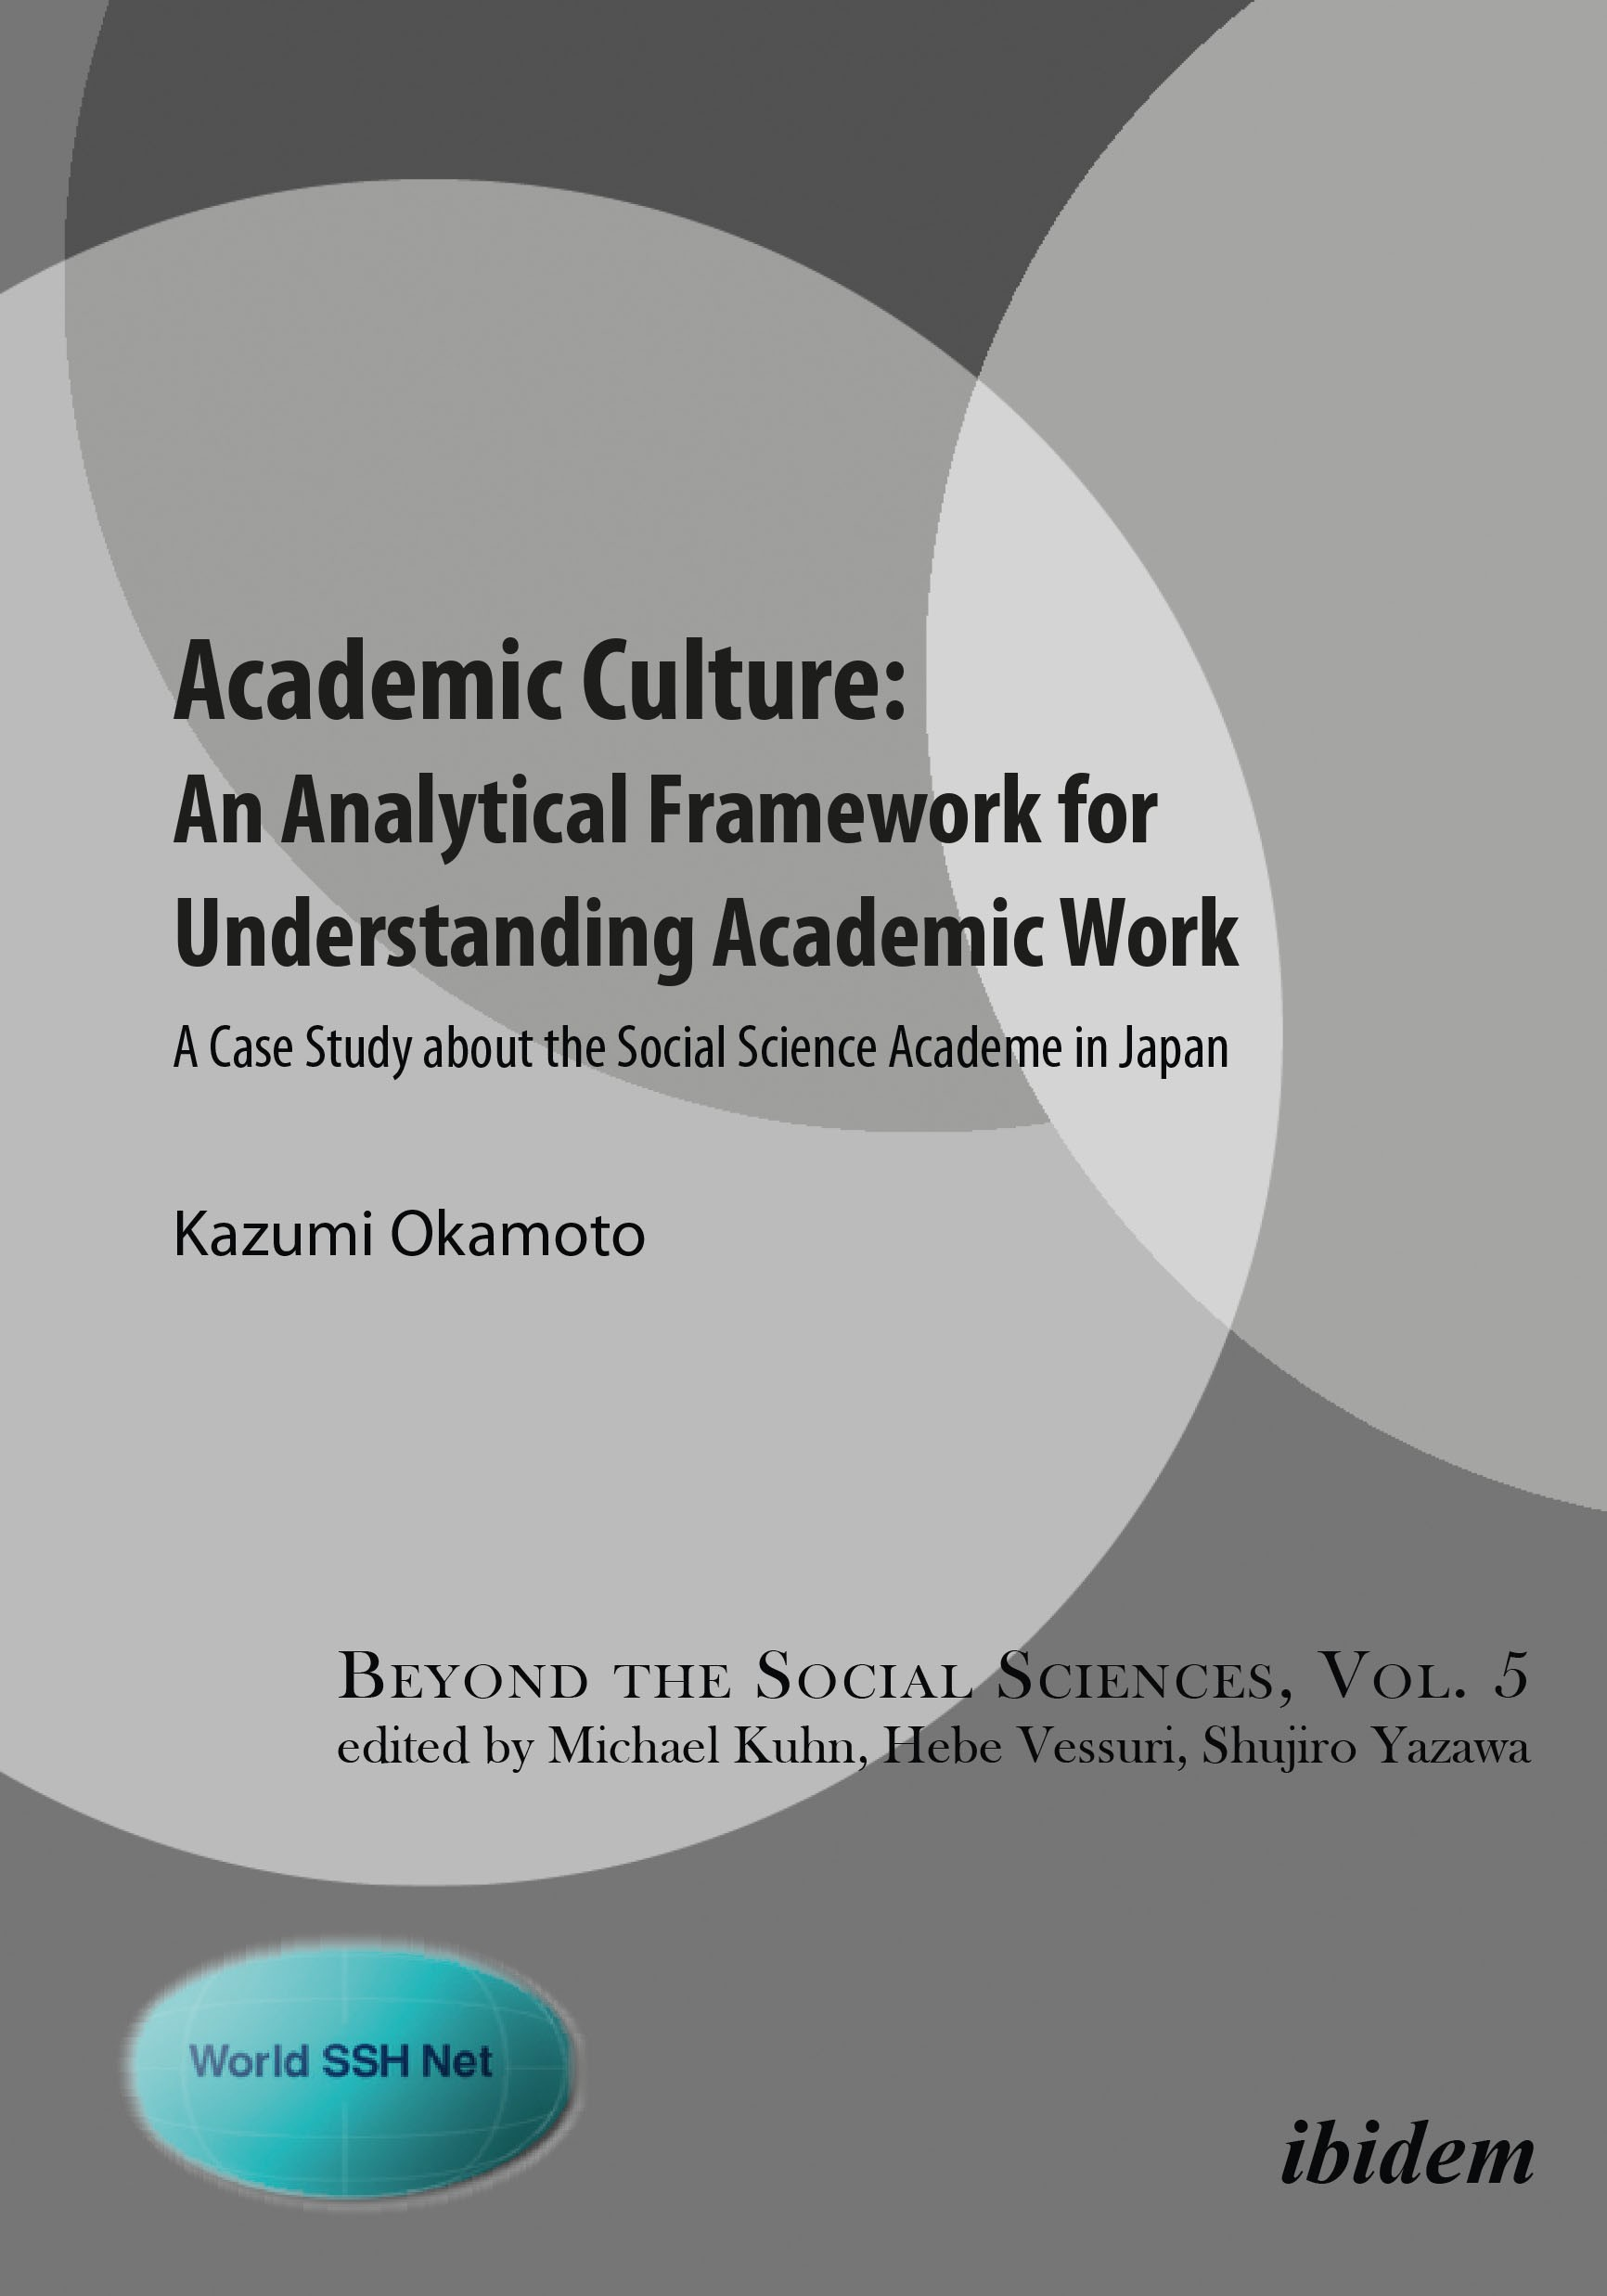 Academic Culture: An Analytical Framework for Understanding Academic Work